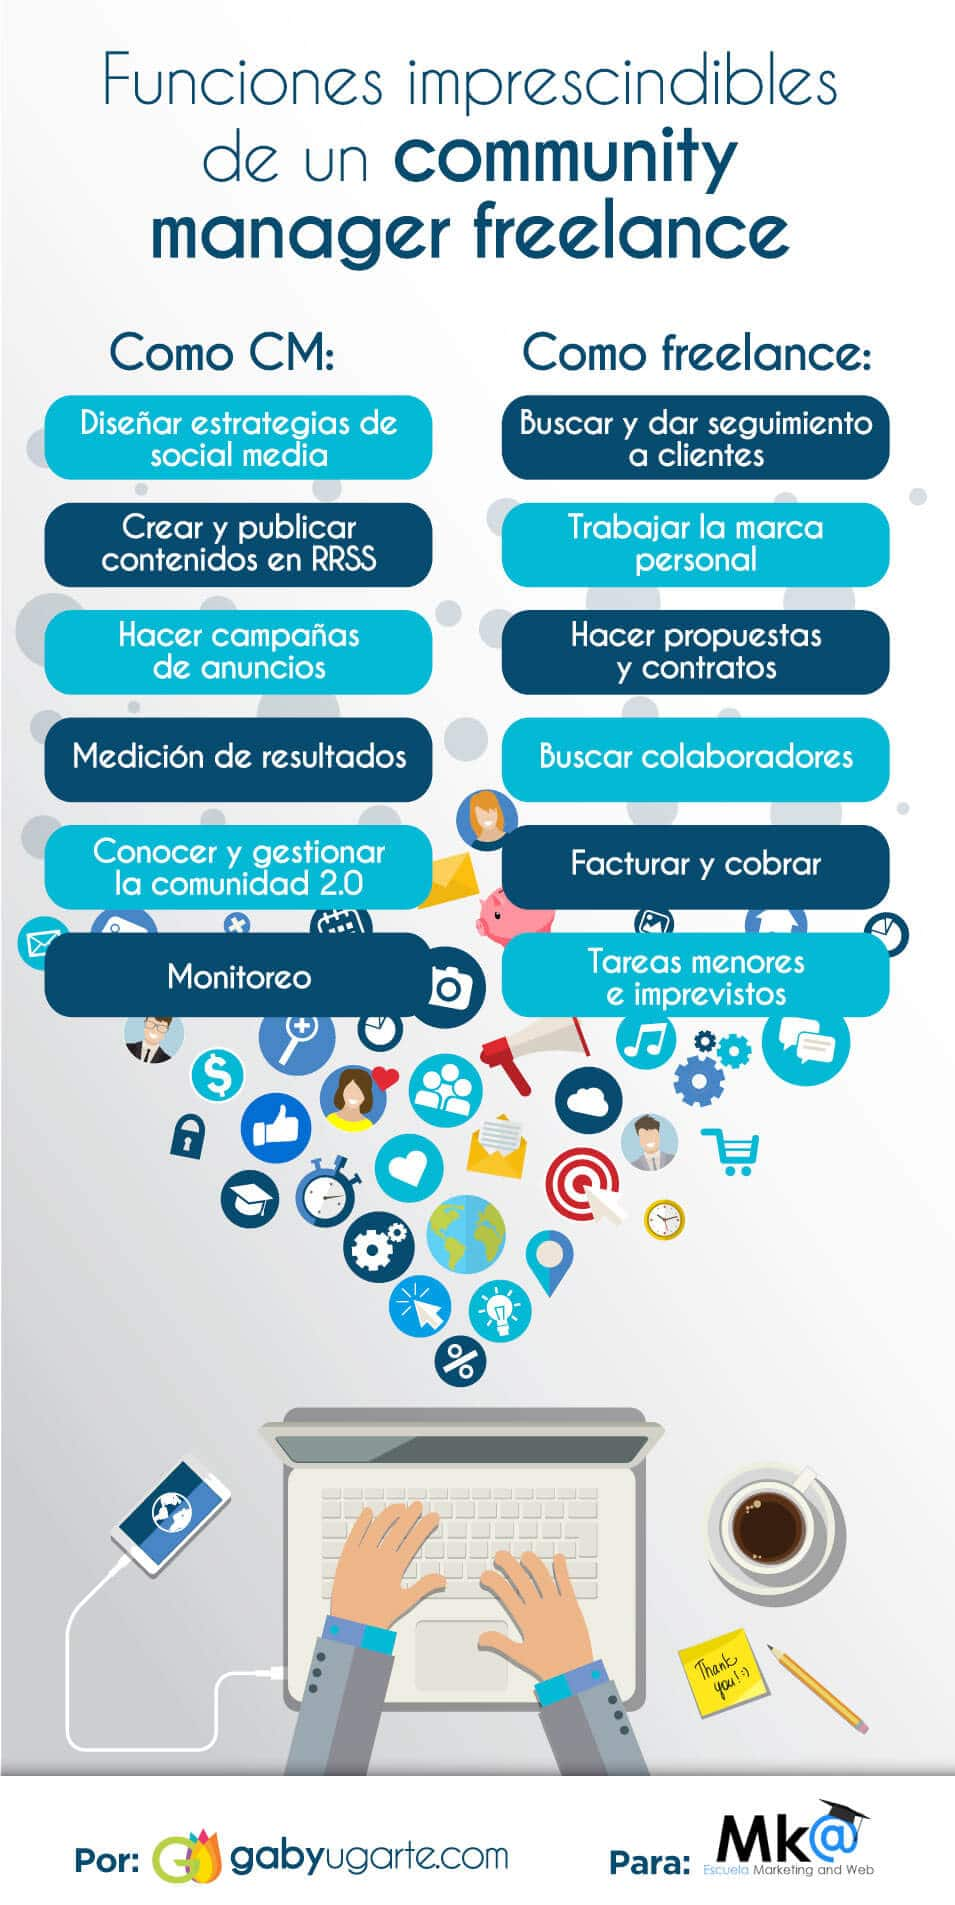 Funciones de un community manager freelance